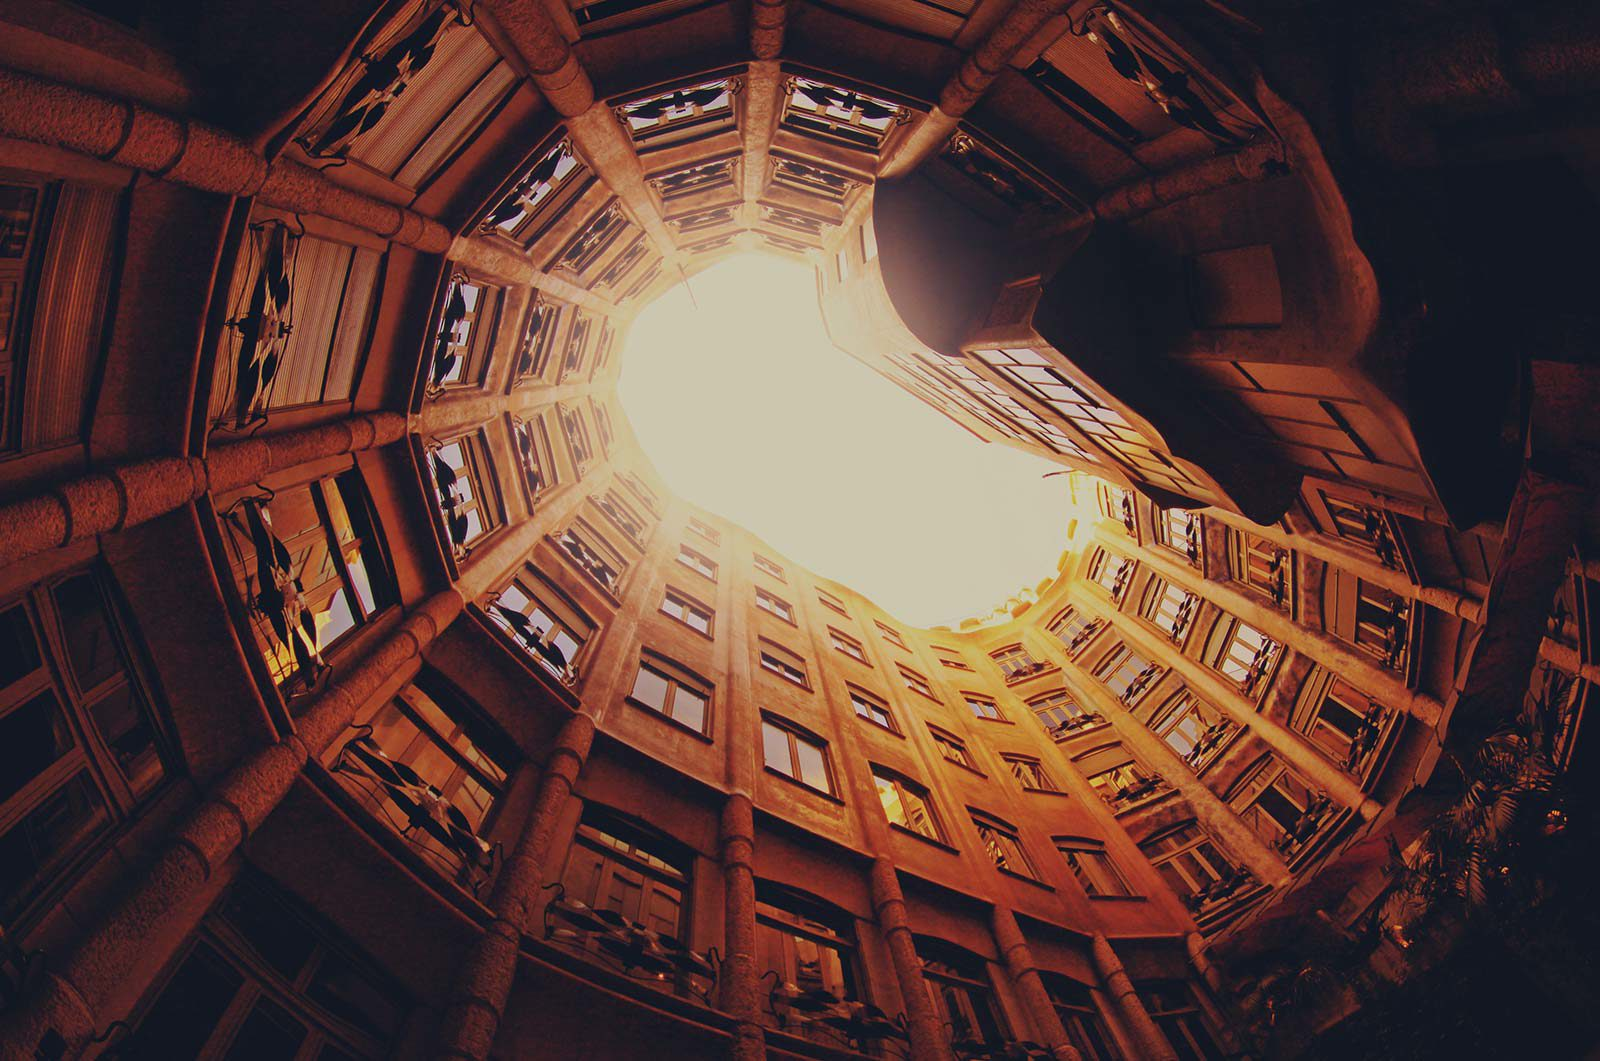 View looking up of an orange, circular building with various rooms.